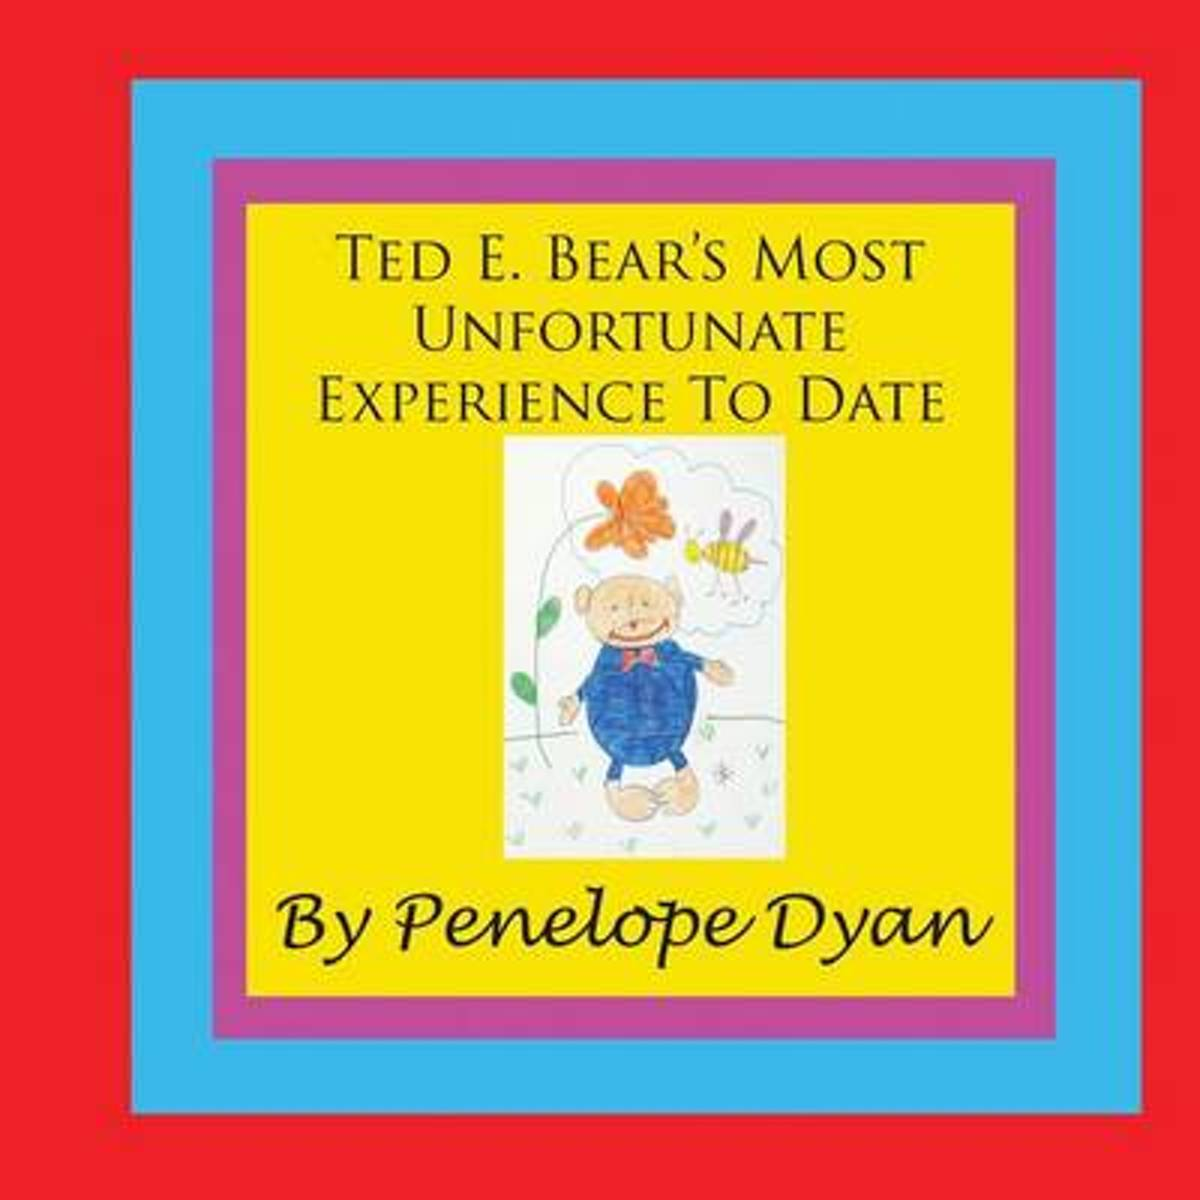 Ted E. Bear's Most Unfortunate Experience To Date